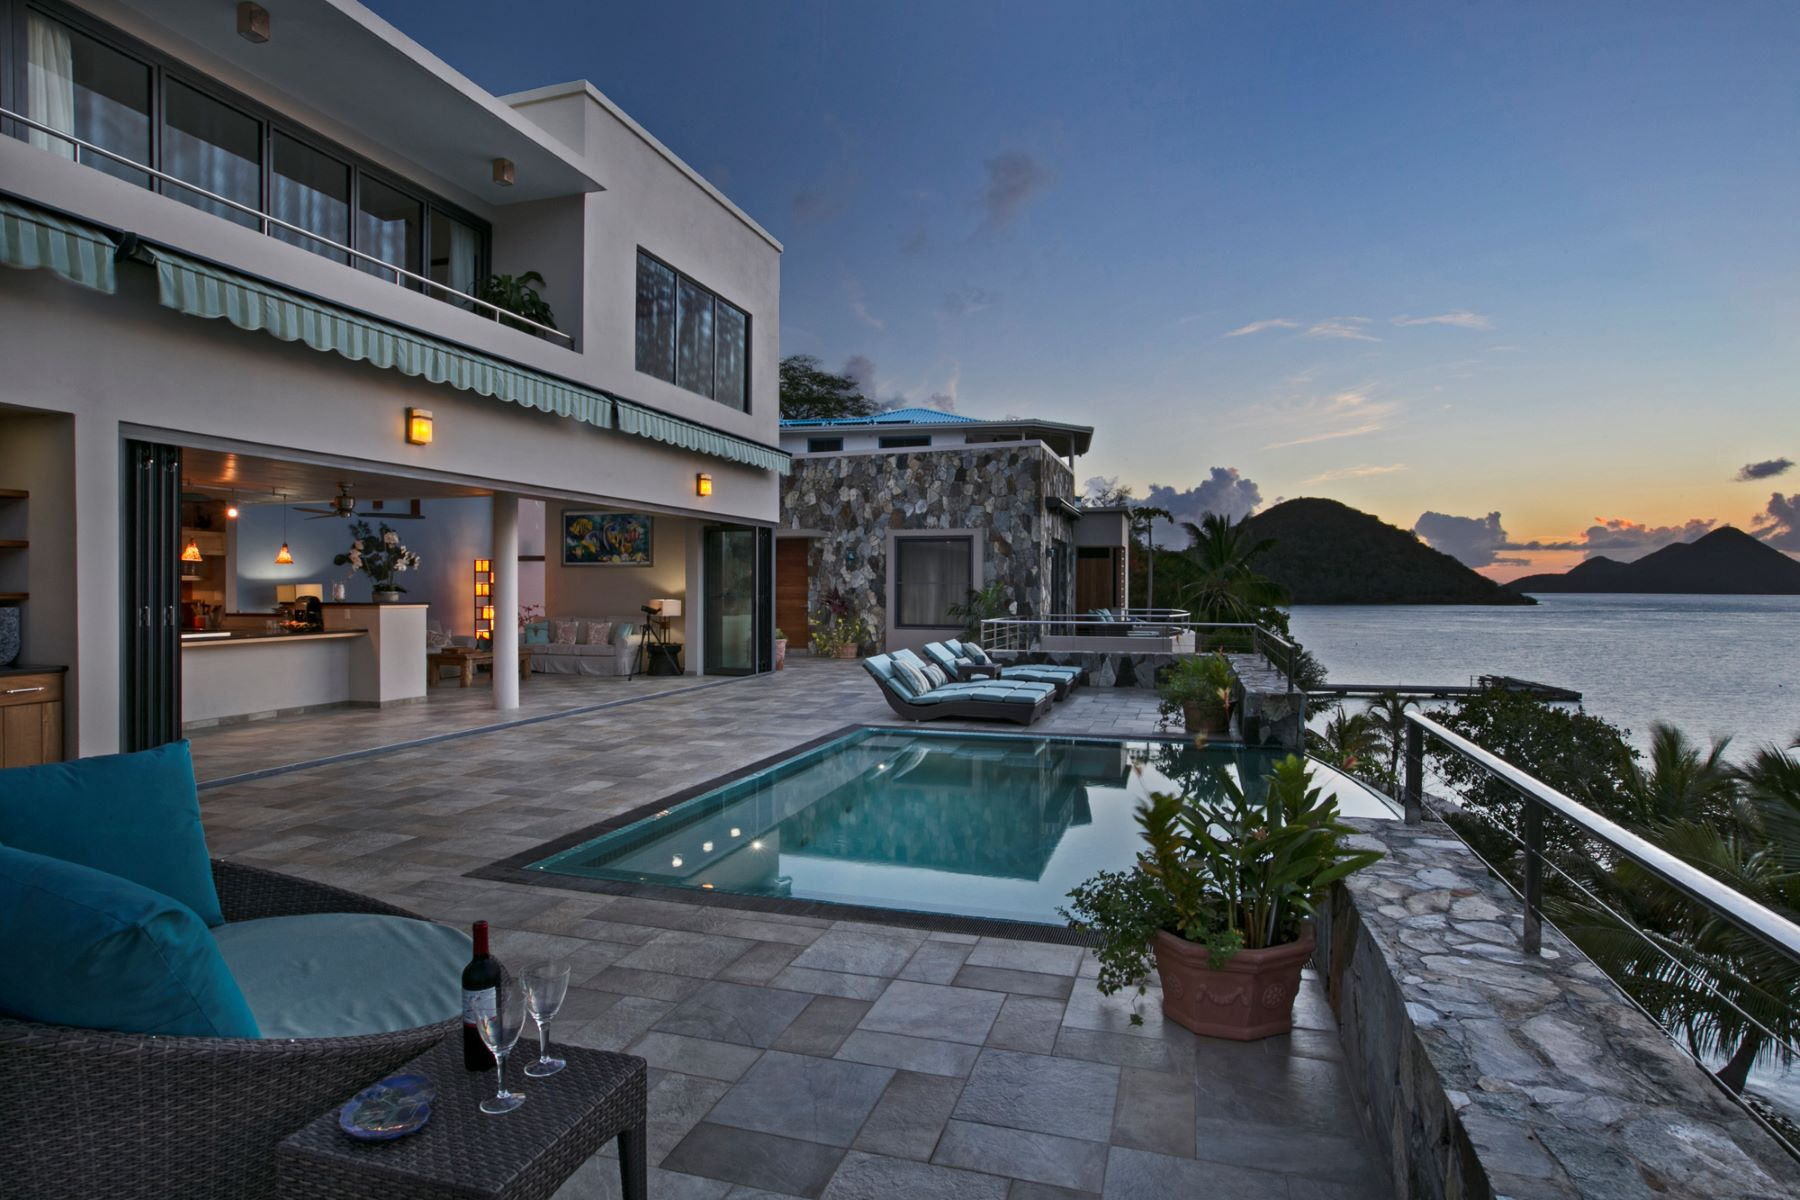 Single Family Home for Sale at Tower House & Frenchman's Chalet Frenchmans Cay, Frenchman's Cay British Virgin Islands